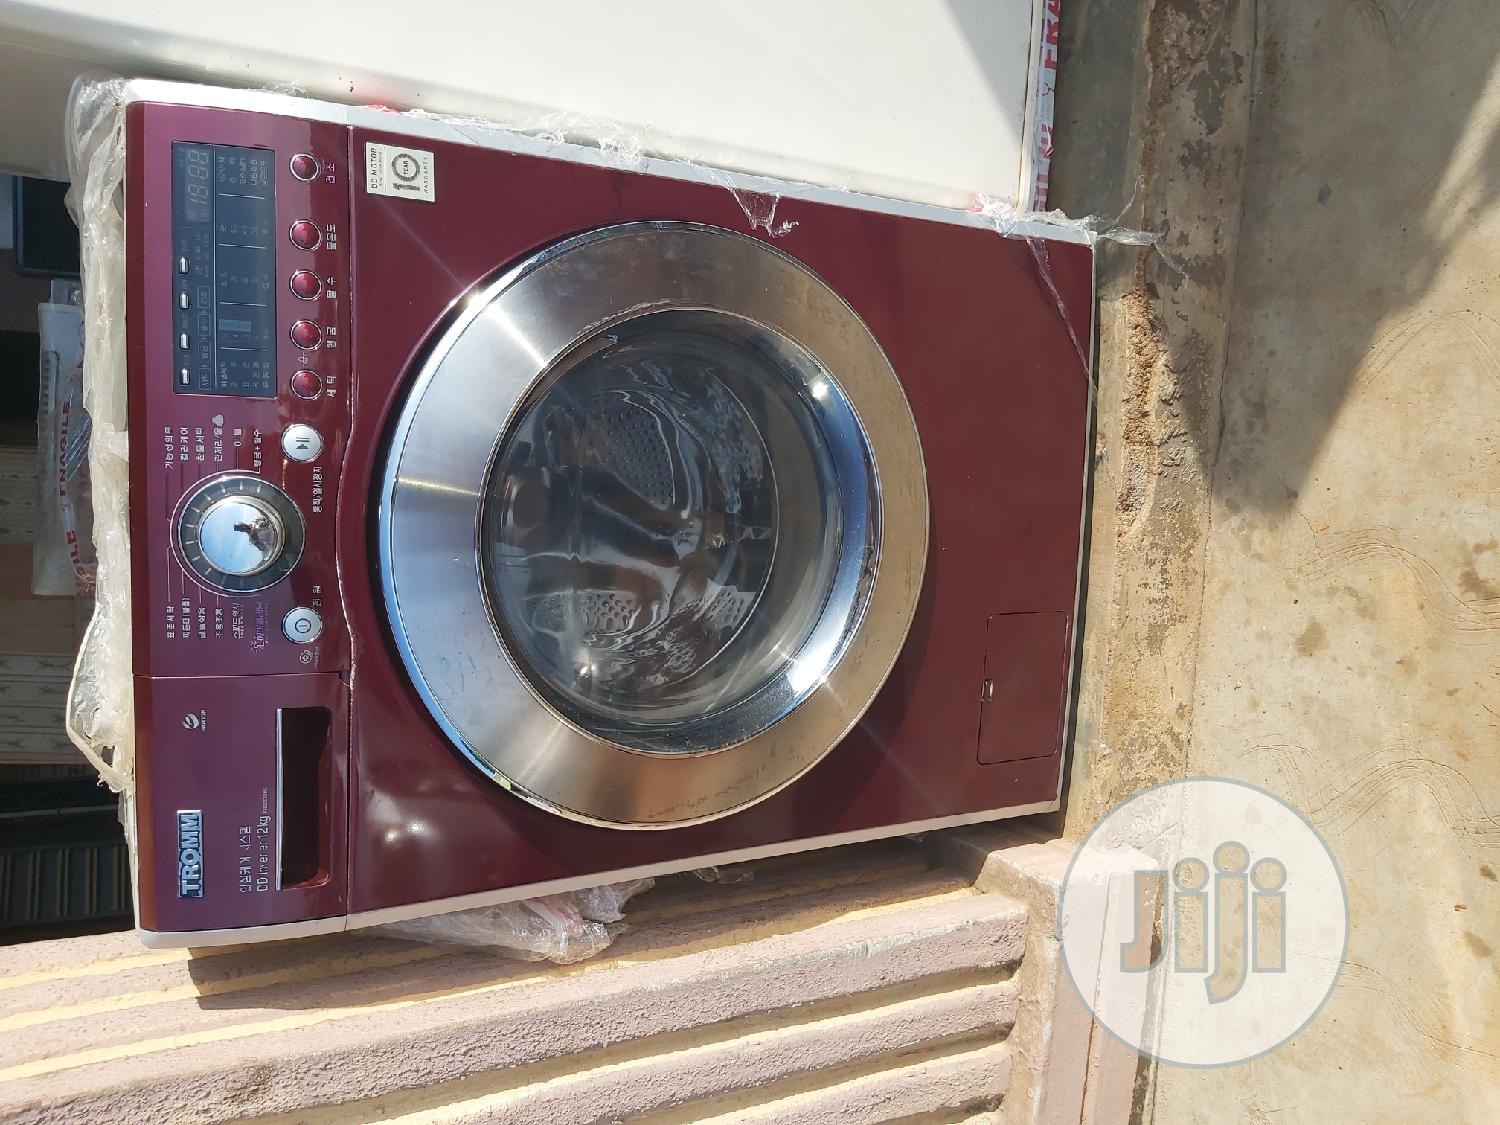 LG Tromm 12kg Washer and Dryer